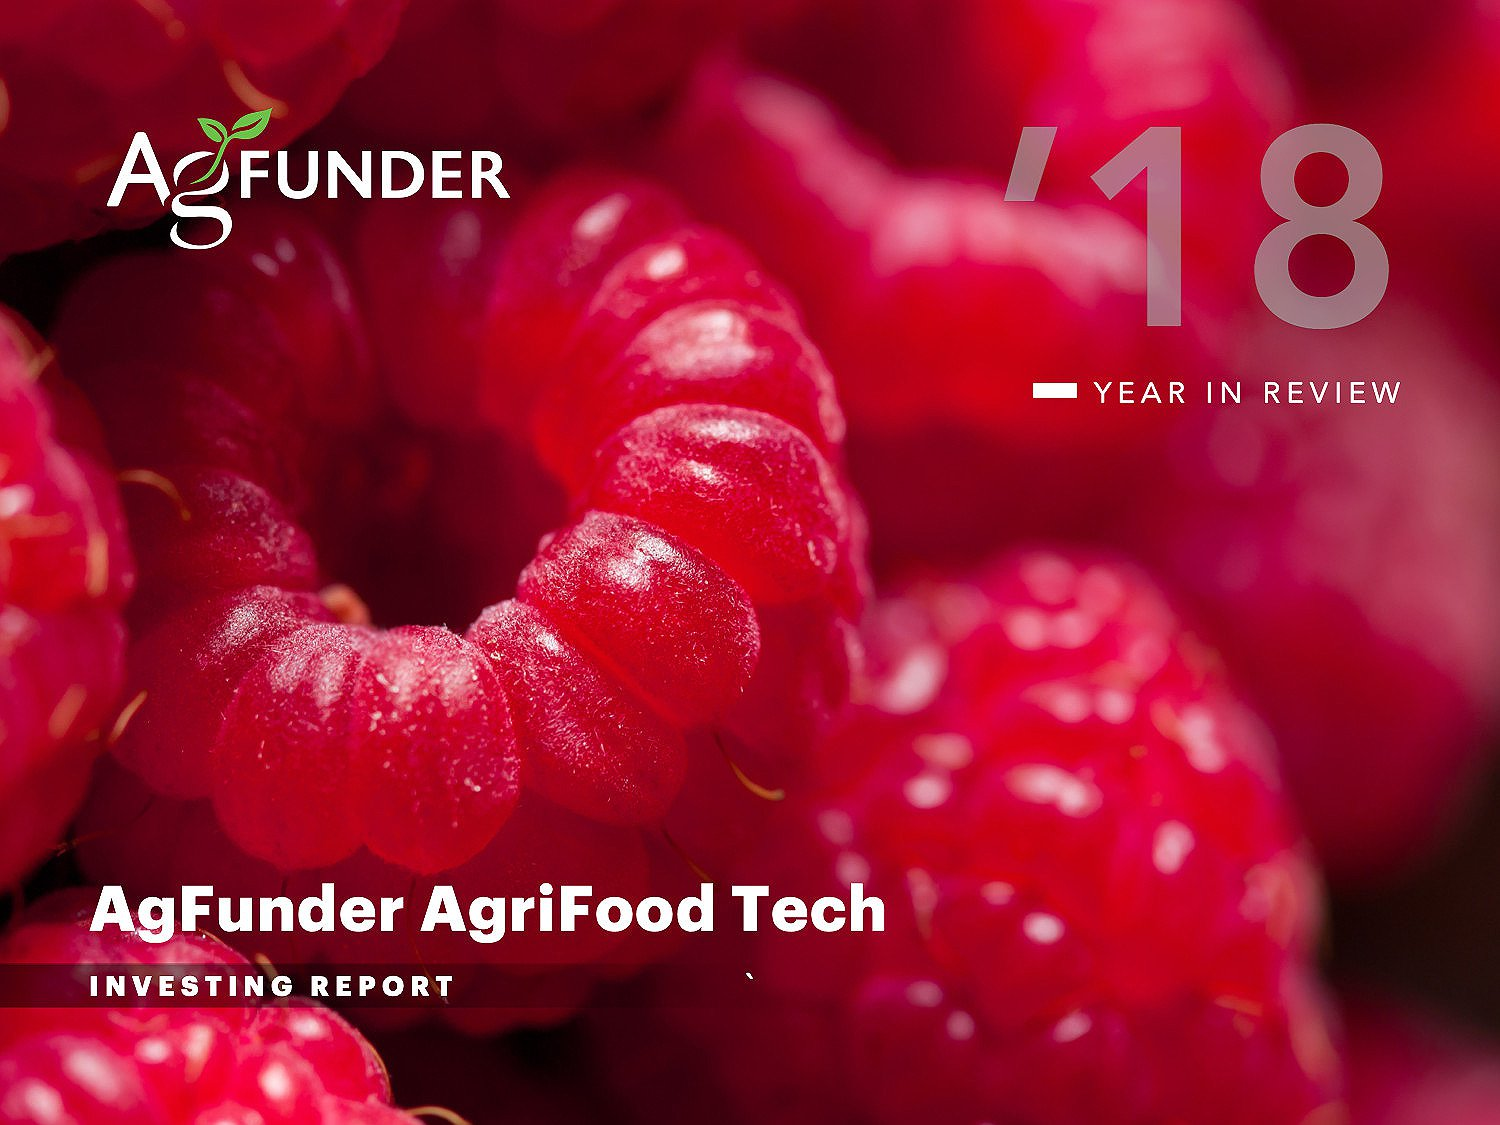 AgFunder AgriFood Tech Investing Report - 2018 | AgFunder